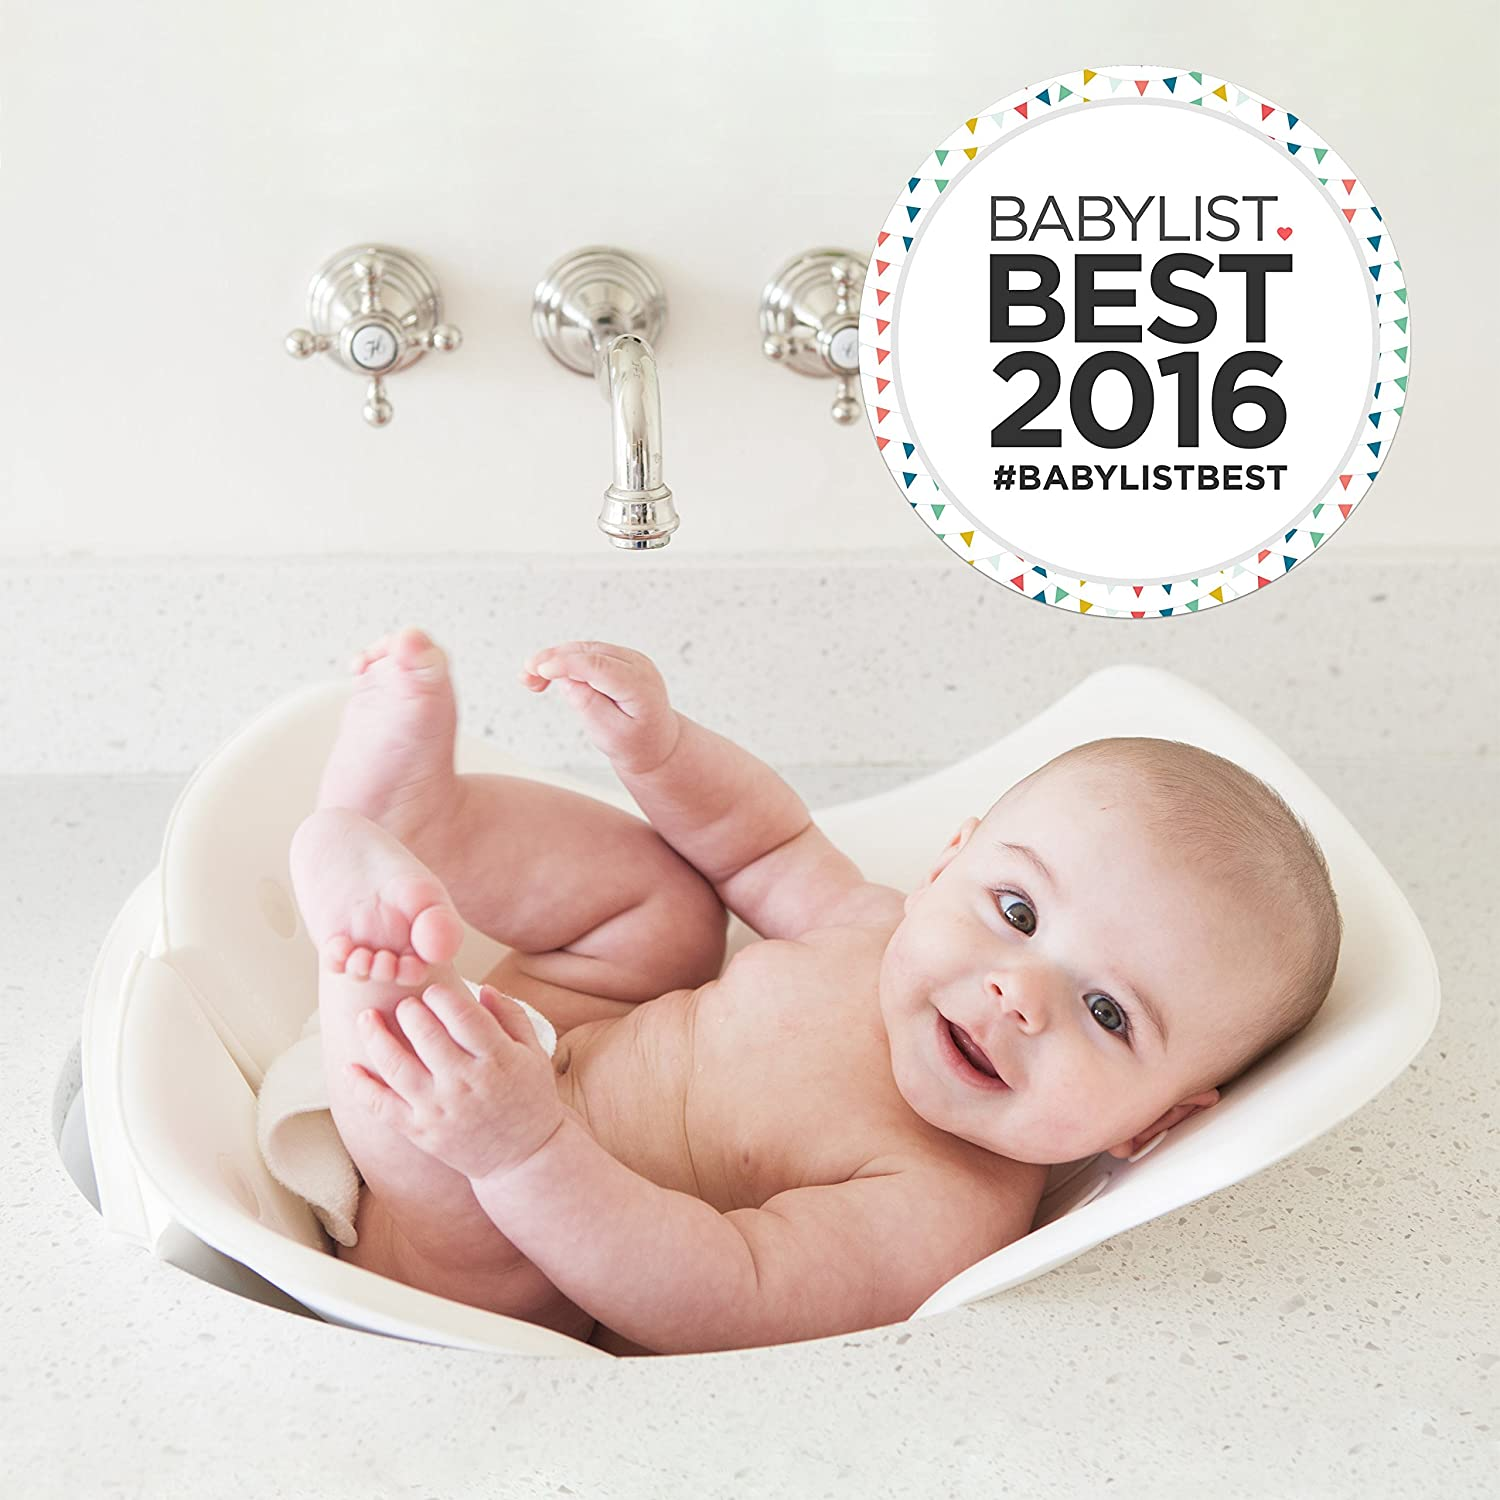 Amazon.com : Puj Tub   The Soft, Foldable Baby Bathtub   Newborn, Infant,  0 6 Months, In Sink Baby Bathtub, BPA Free, PVC Free (White) : Baby Bathing  Seats ...